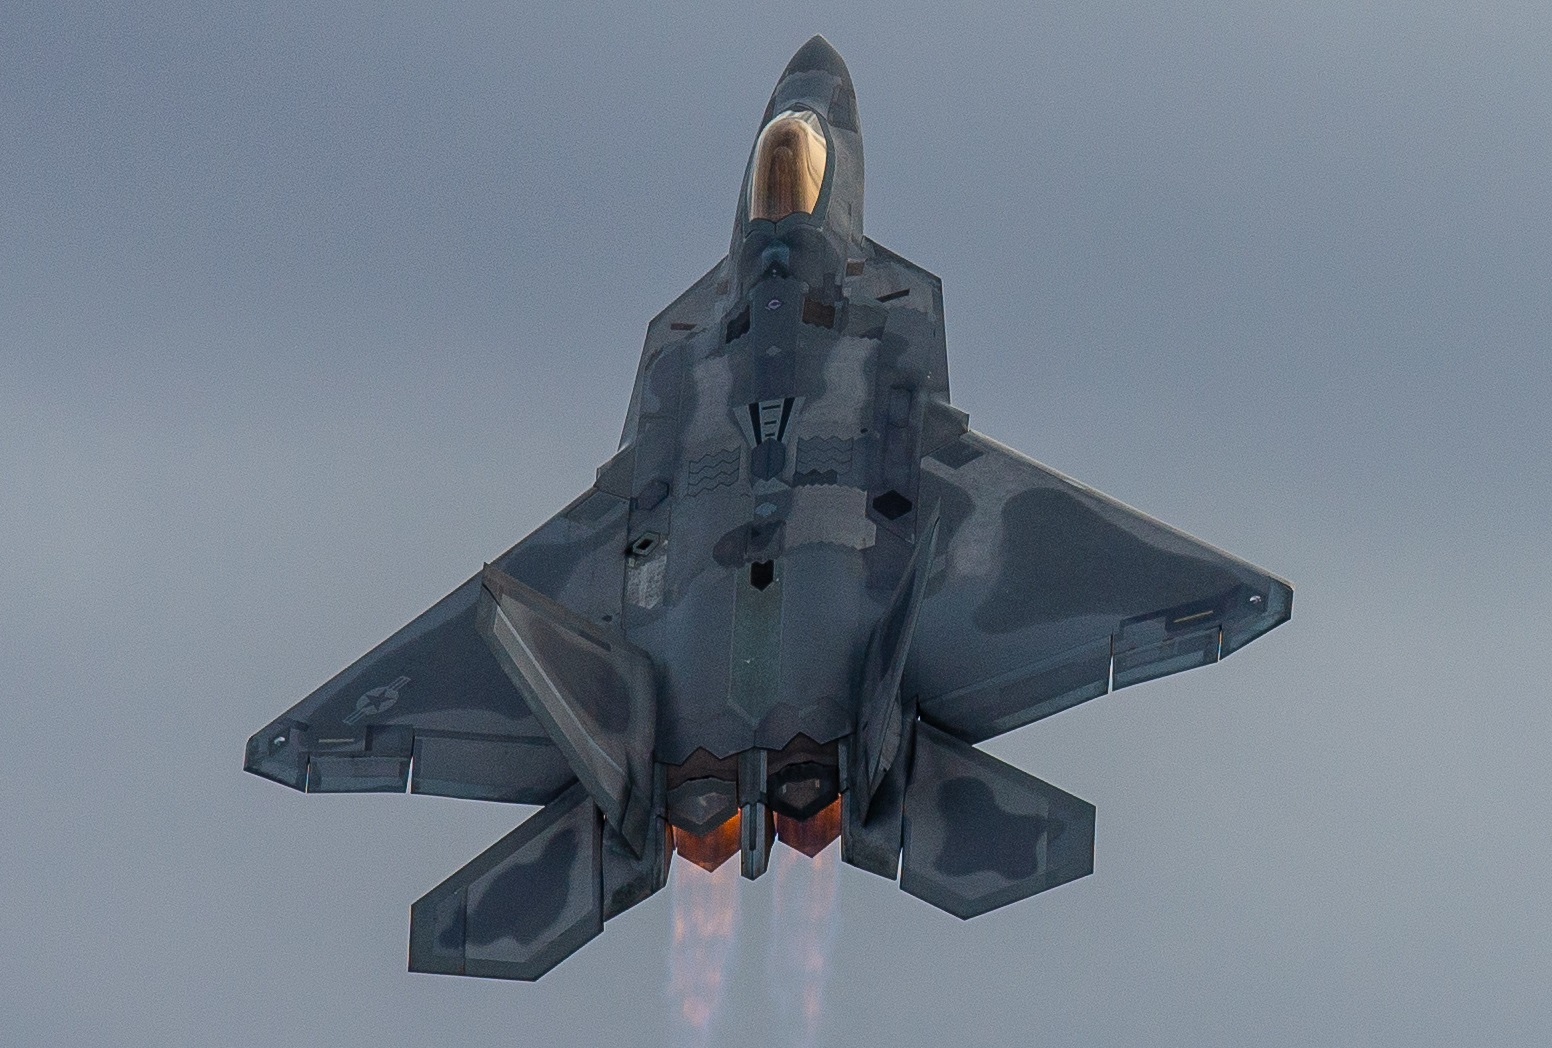 There Is Only 1 Way To Make the F-22 and F-35 Better: Stealth Refueling Tankers